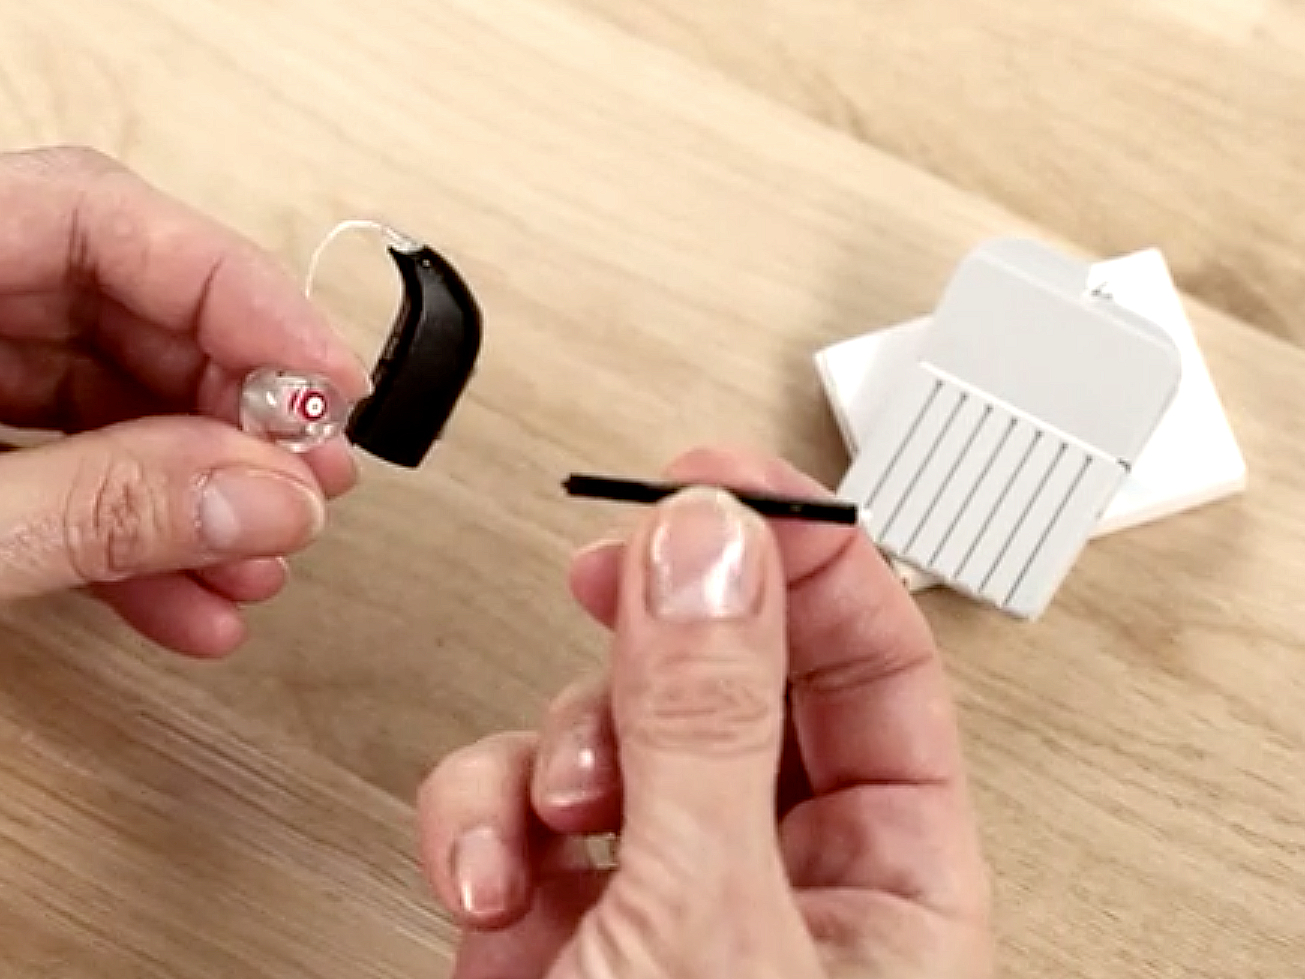 Learn how to clean your hearing aids